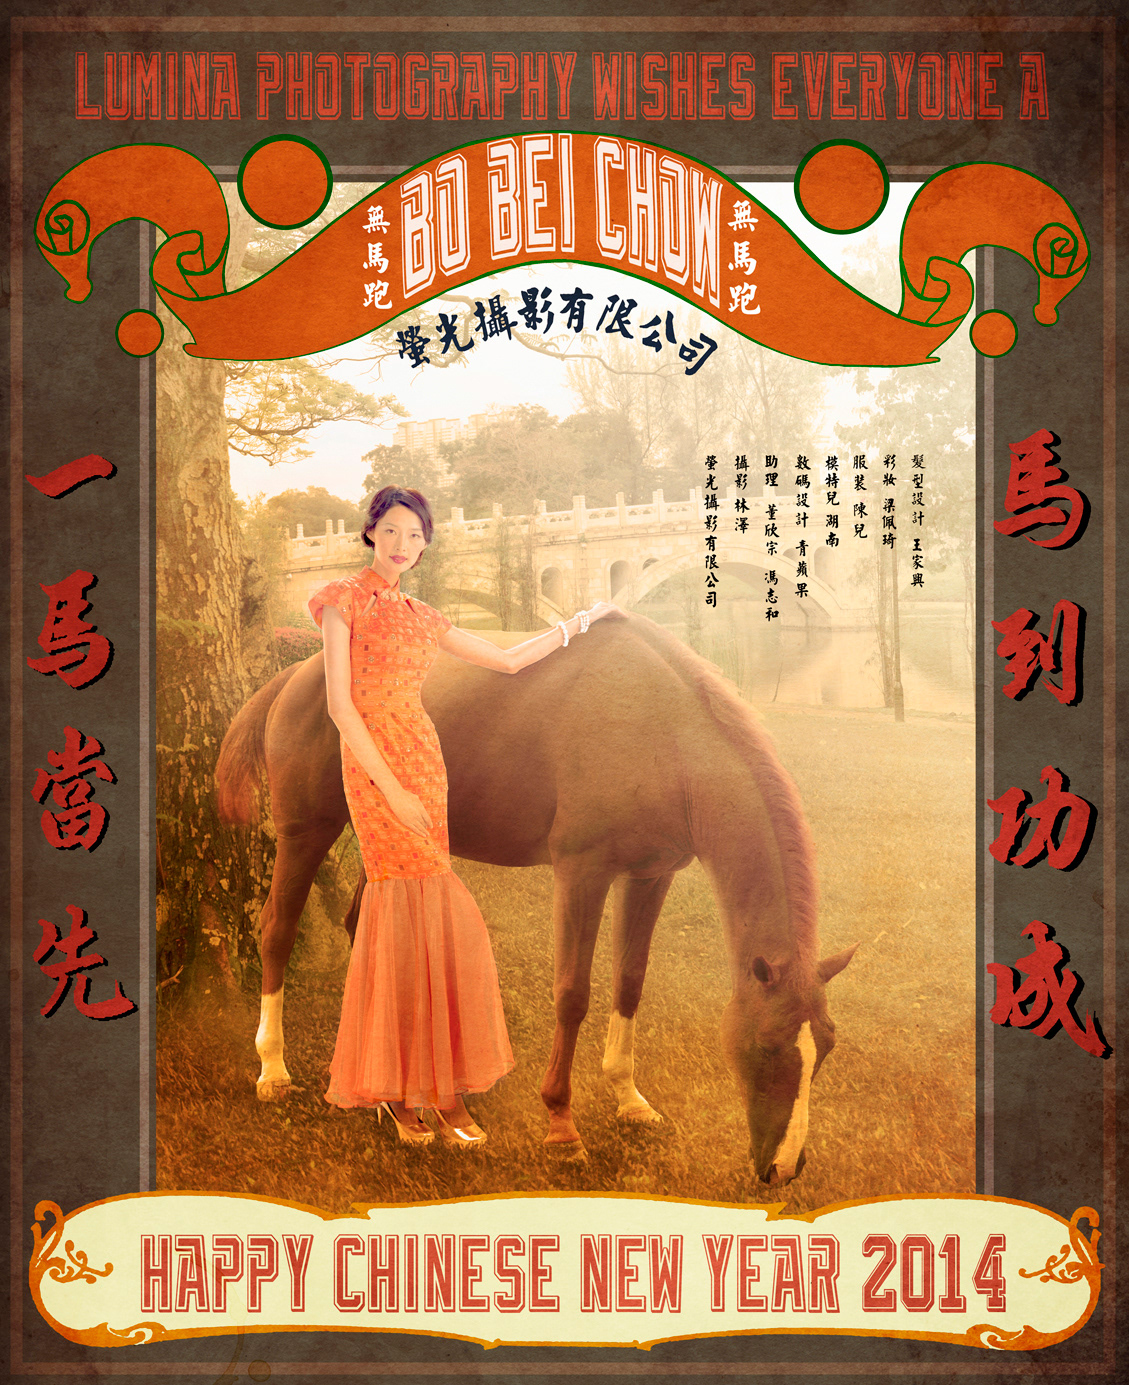 Vintage Chinese Calendar : Lumina photography studio chinese new year